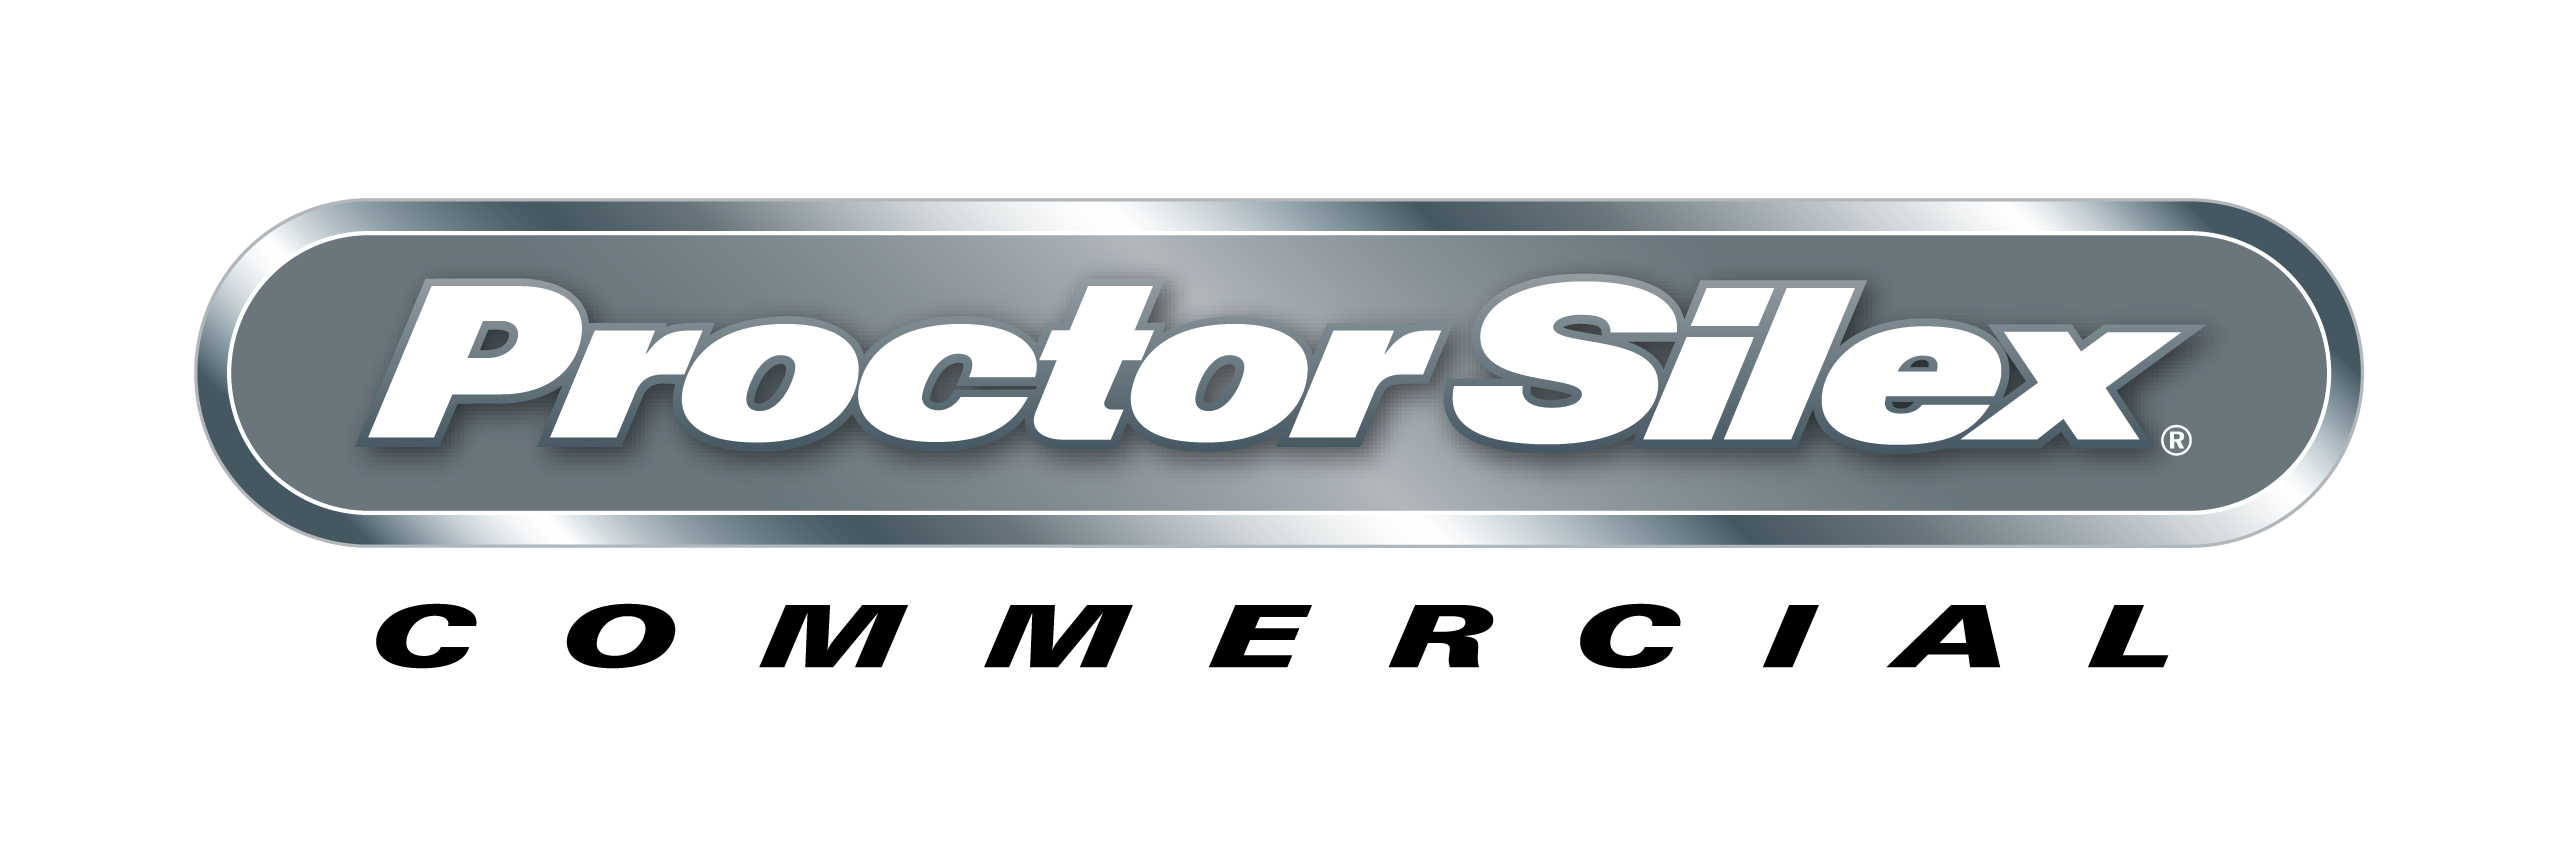 Proctor Silex Commercial